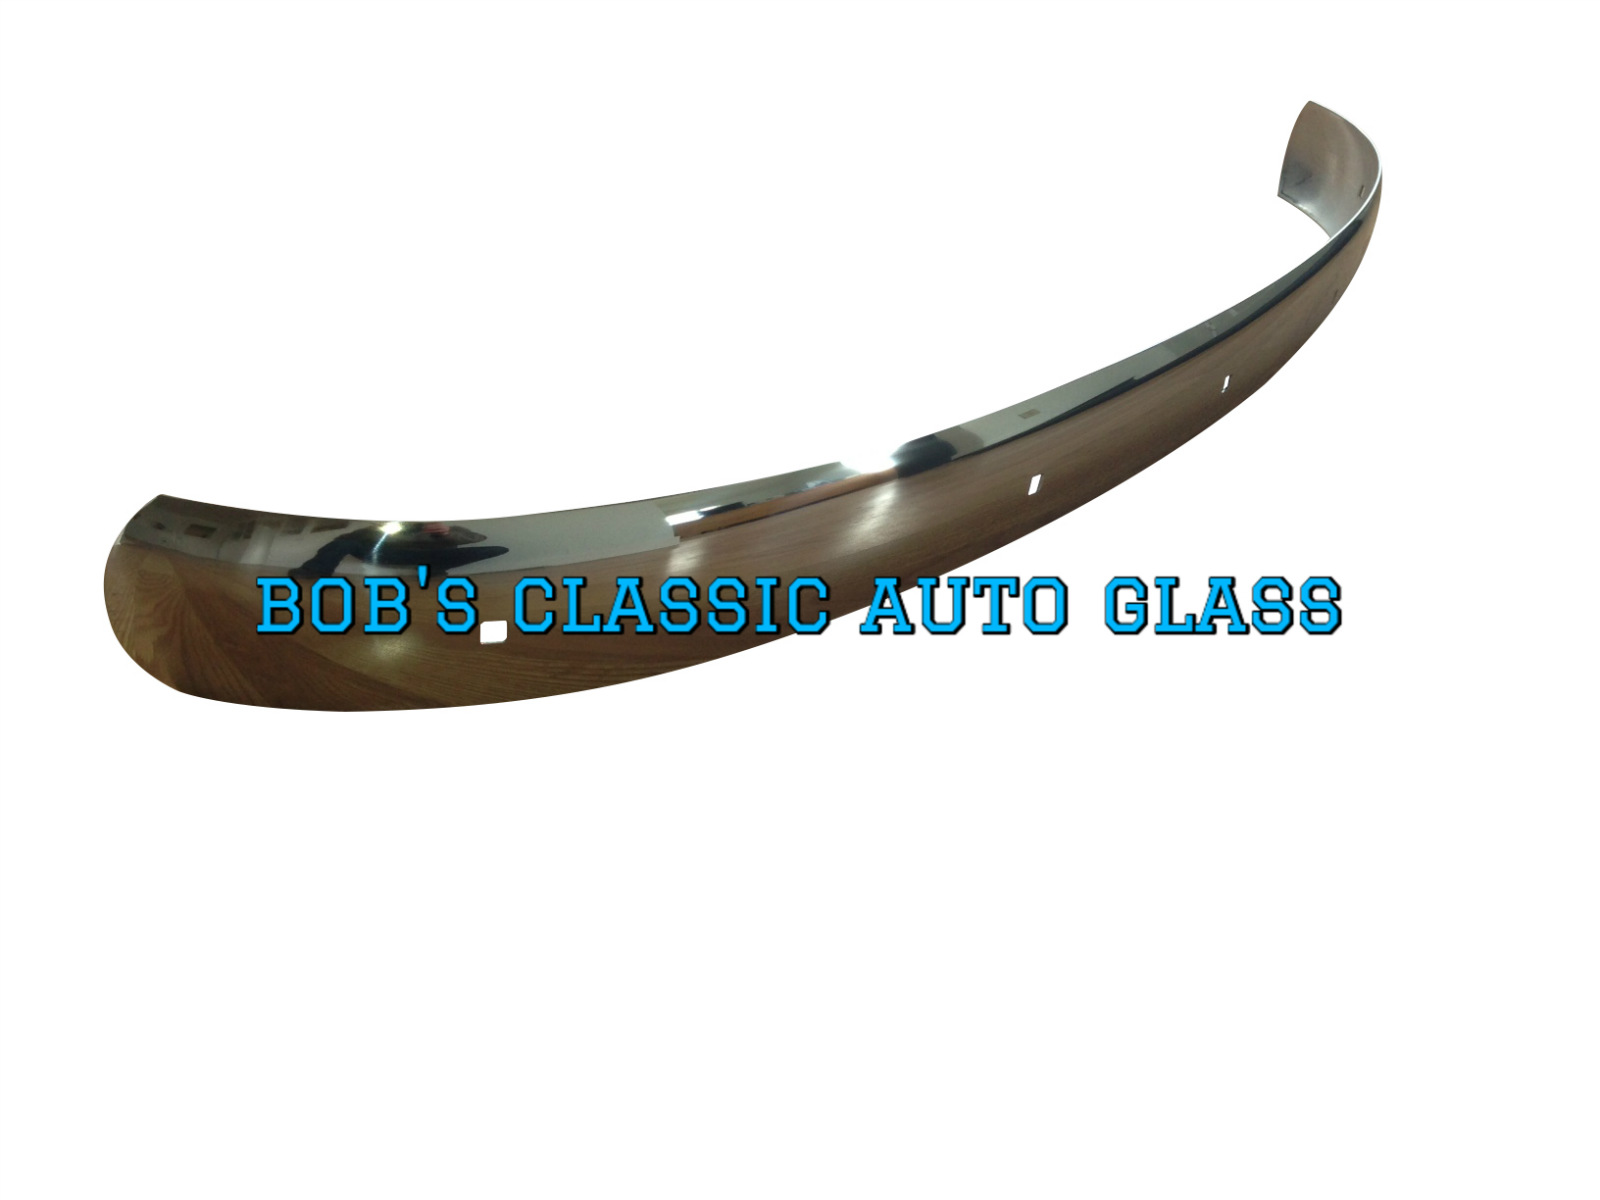 1948 - 1954 CHEVROLET GMC TRUCK STAINLESS FRONT BU